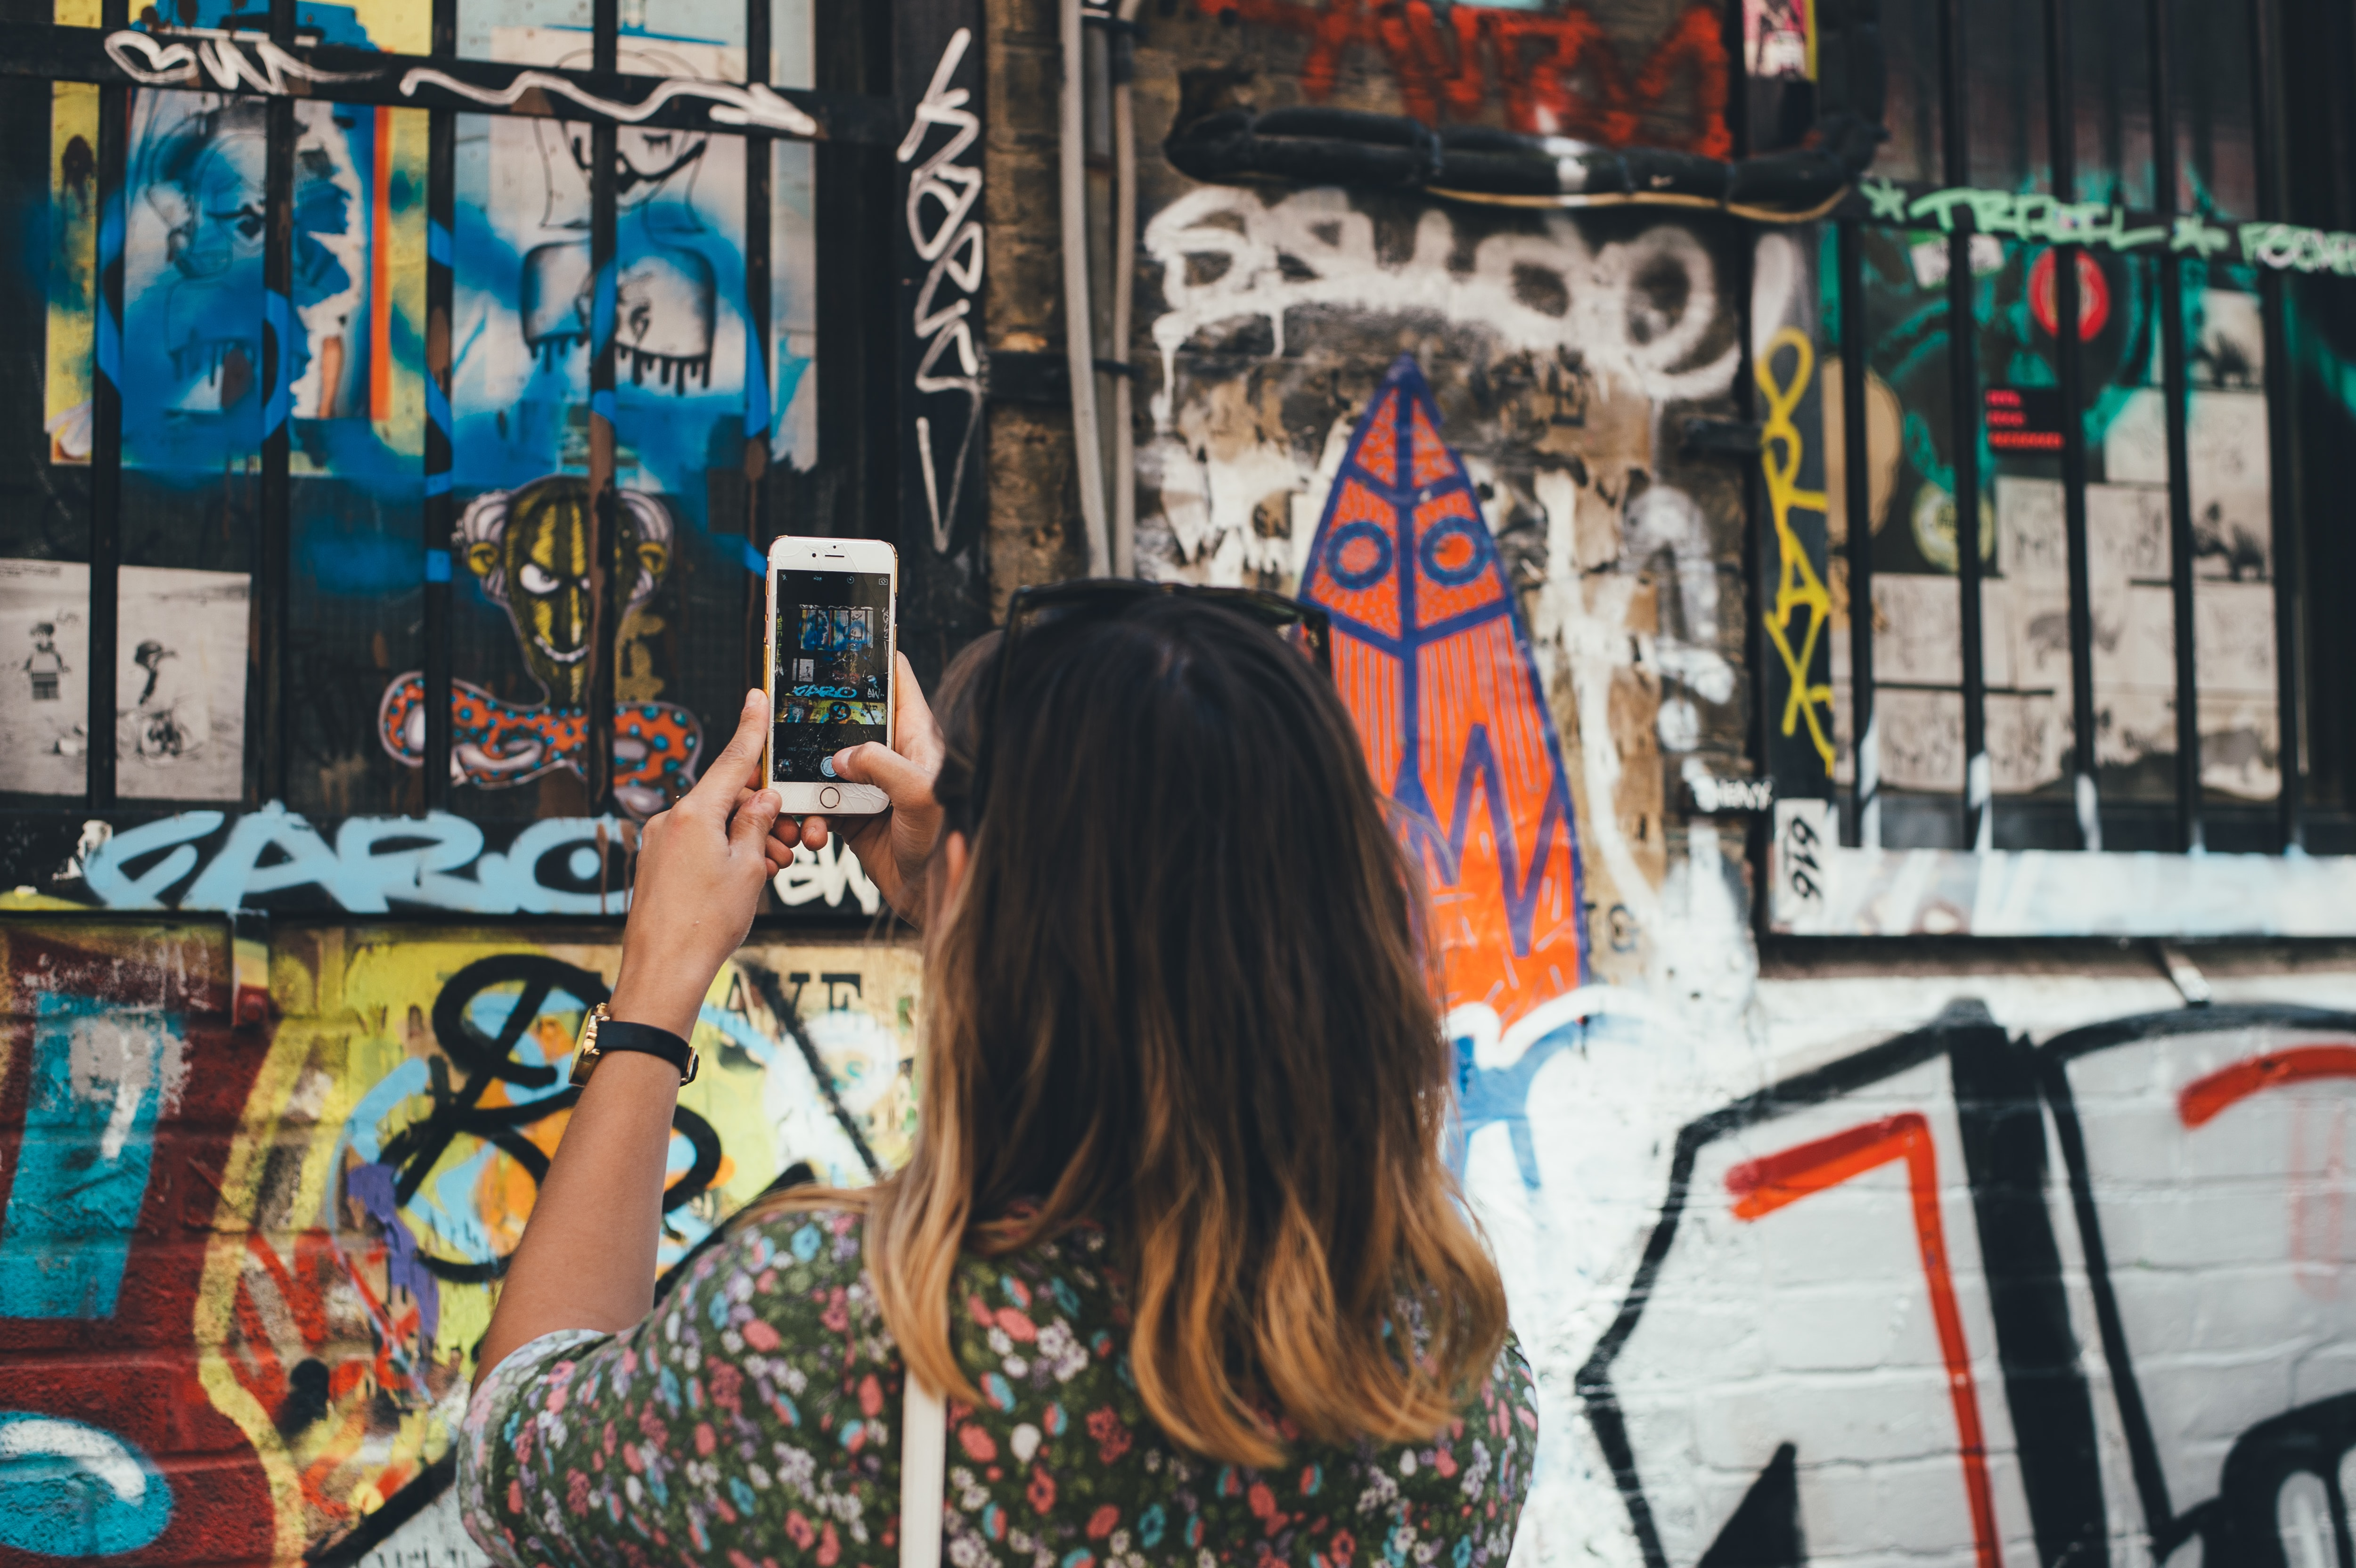 woman holding phone taking picture at wall